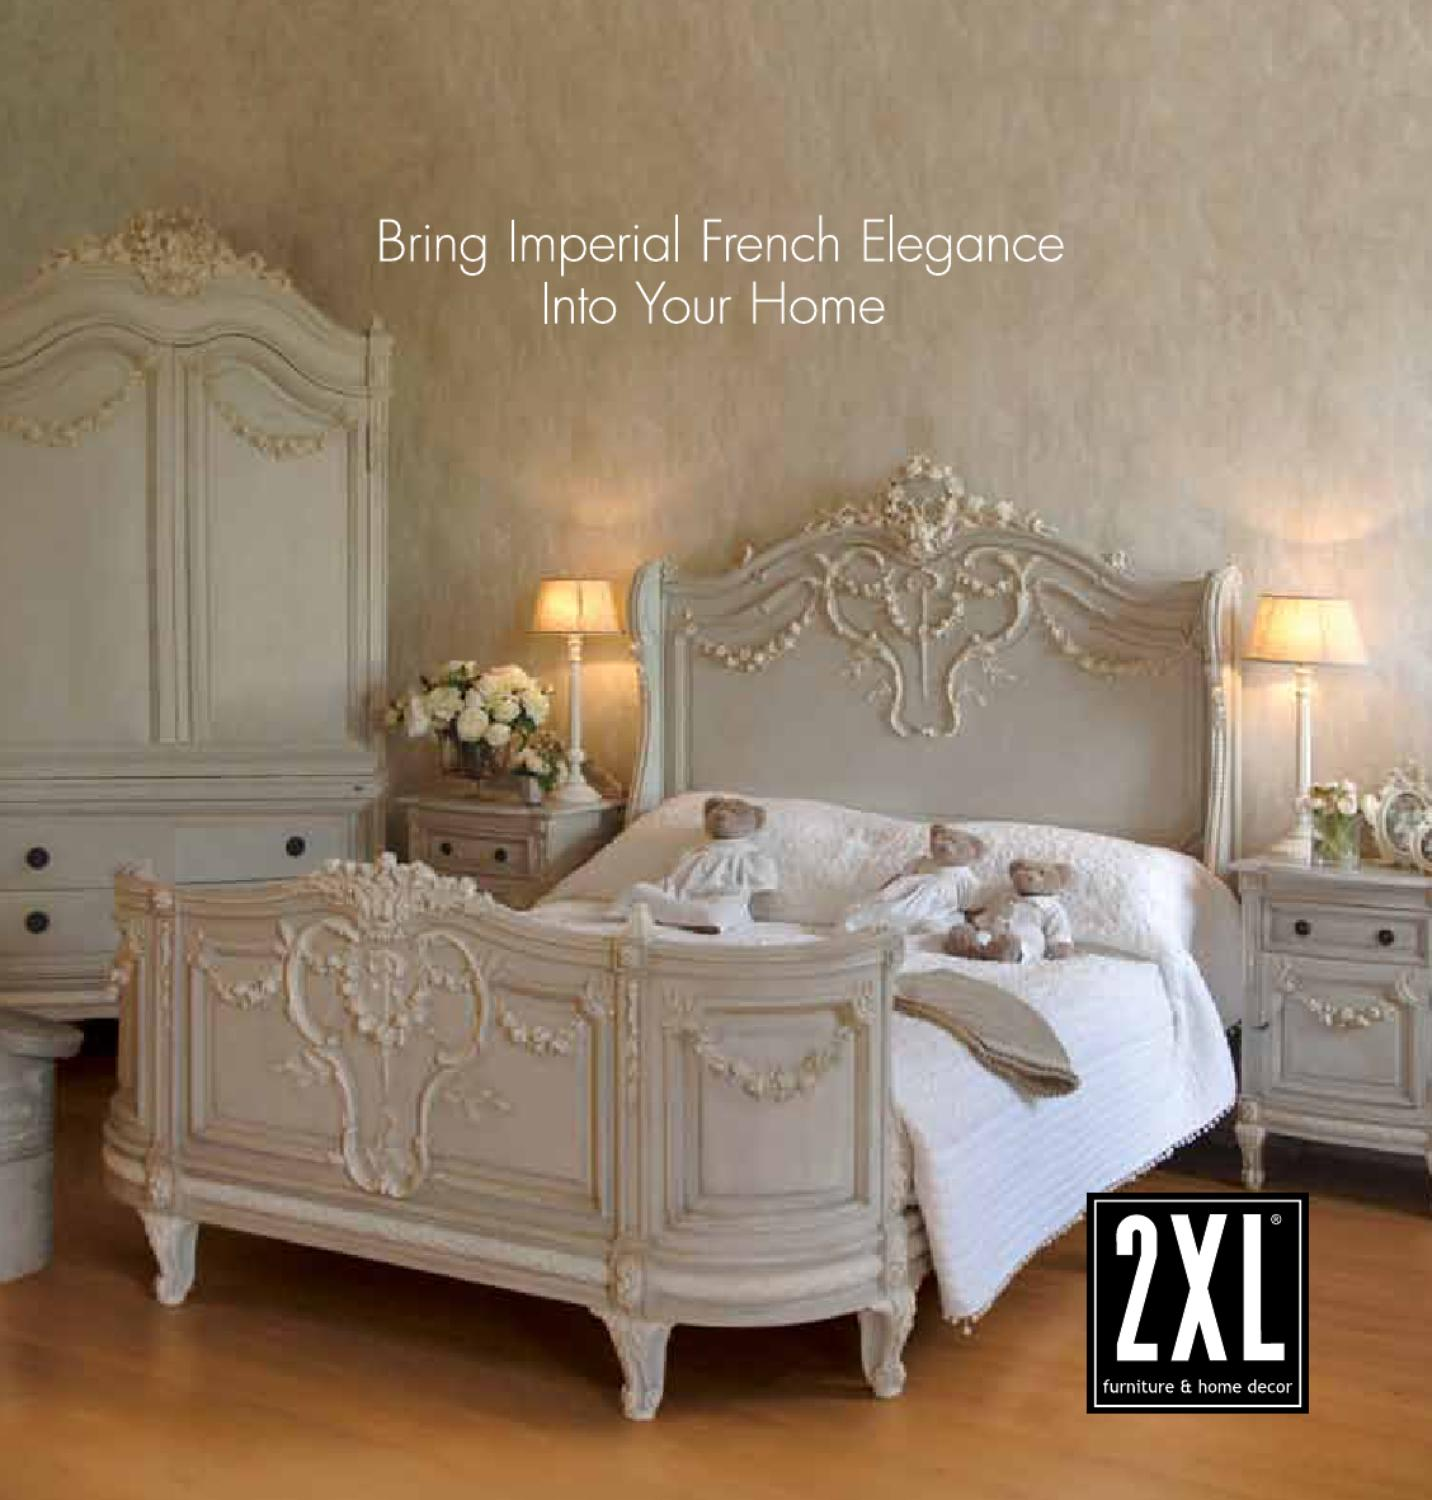 2xl furniture home decor by hot media issuu for Home decor furniture